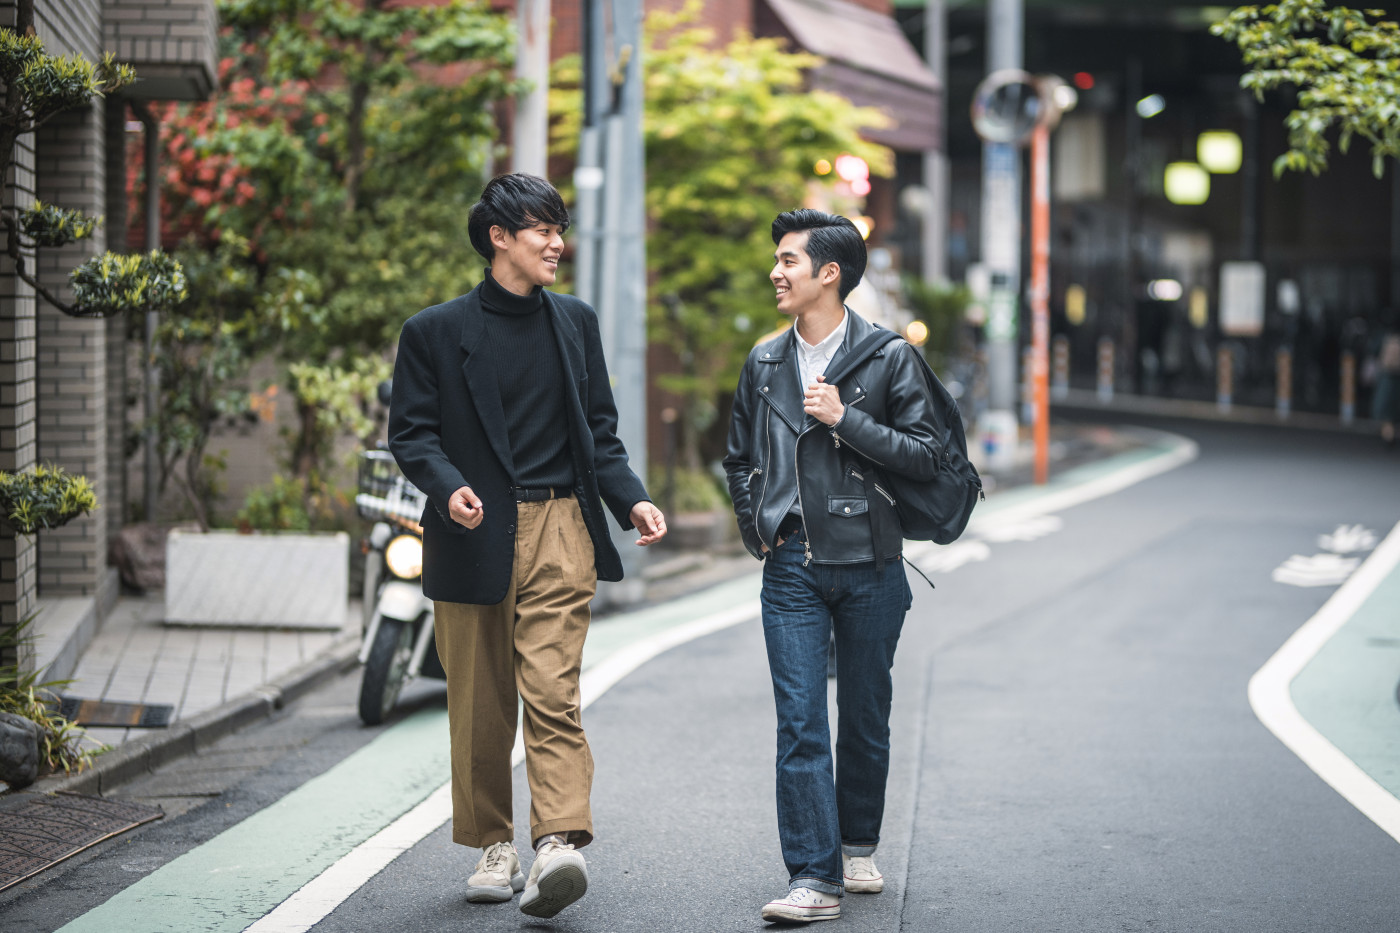 Relaxed Japanese Male Friends Walking and Talking in Tokyo